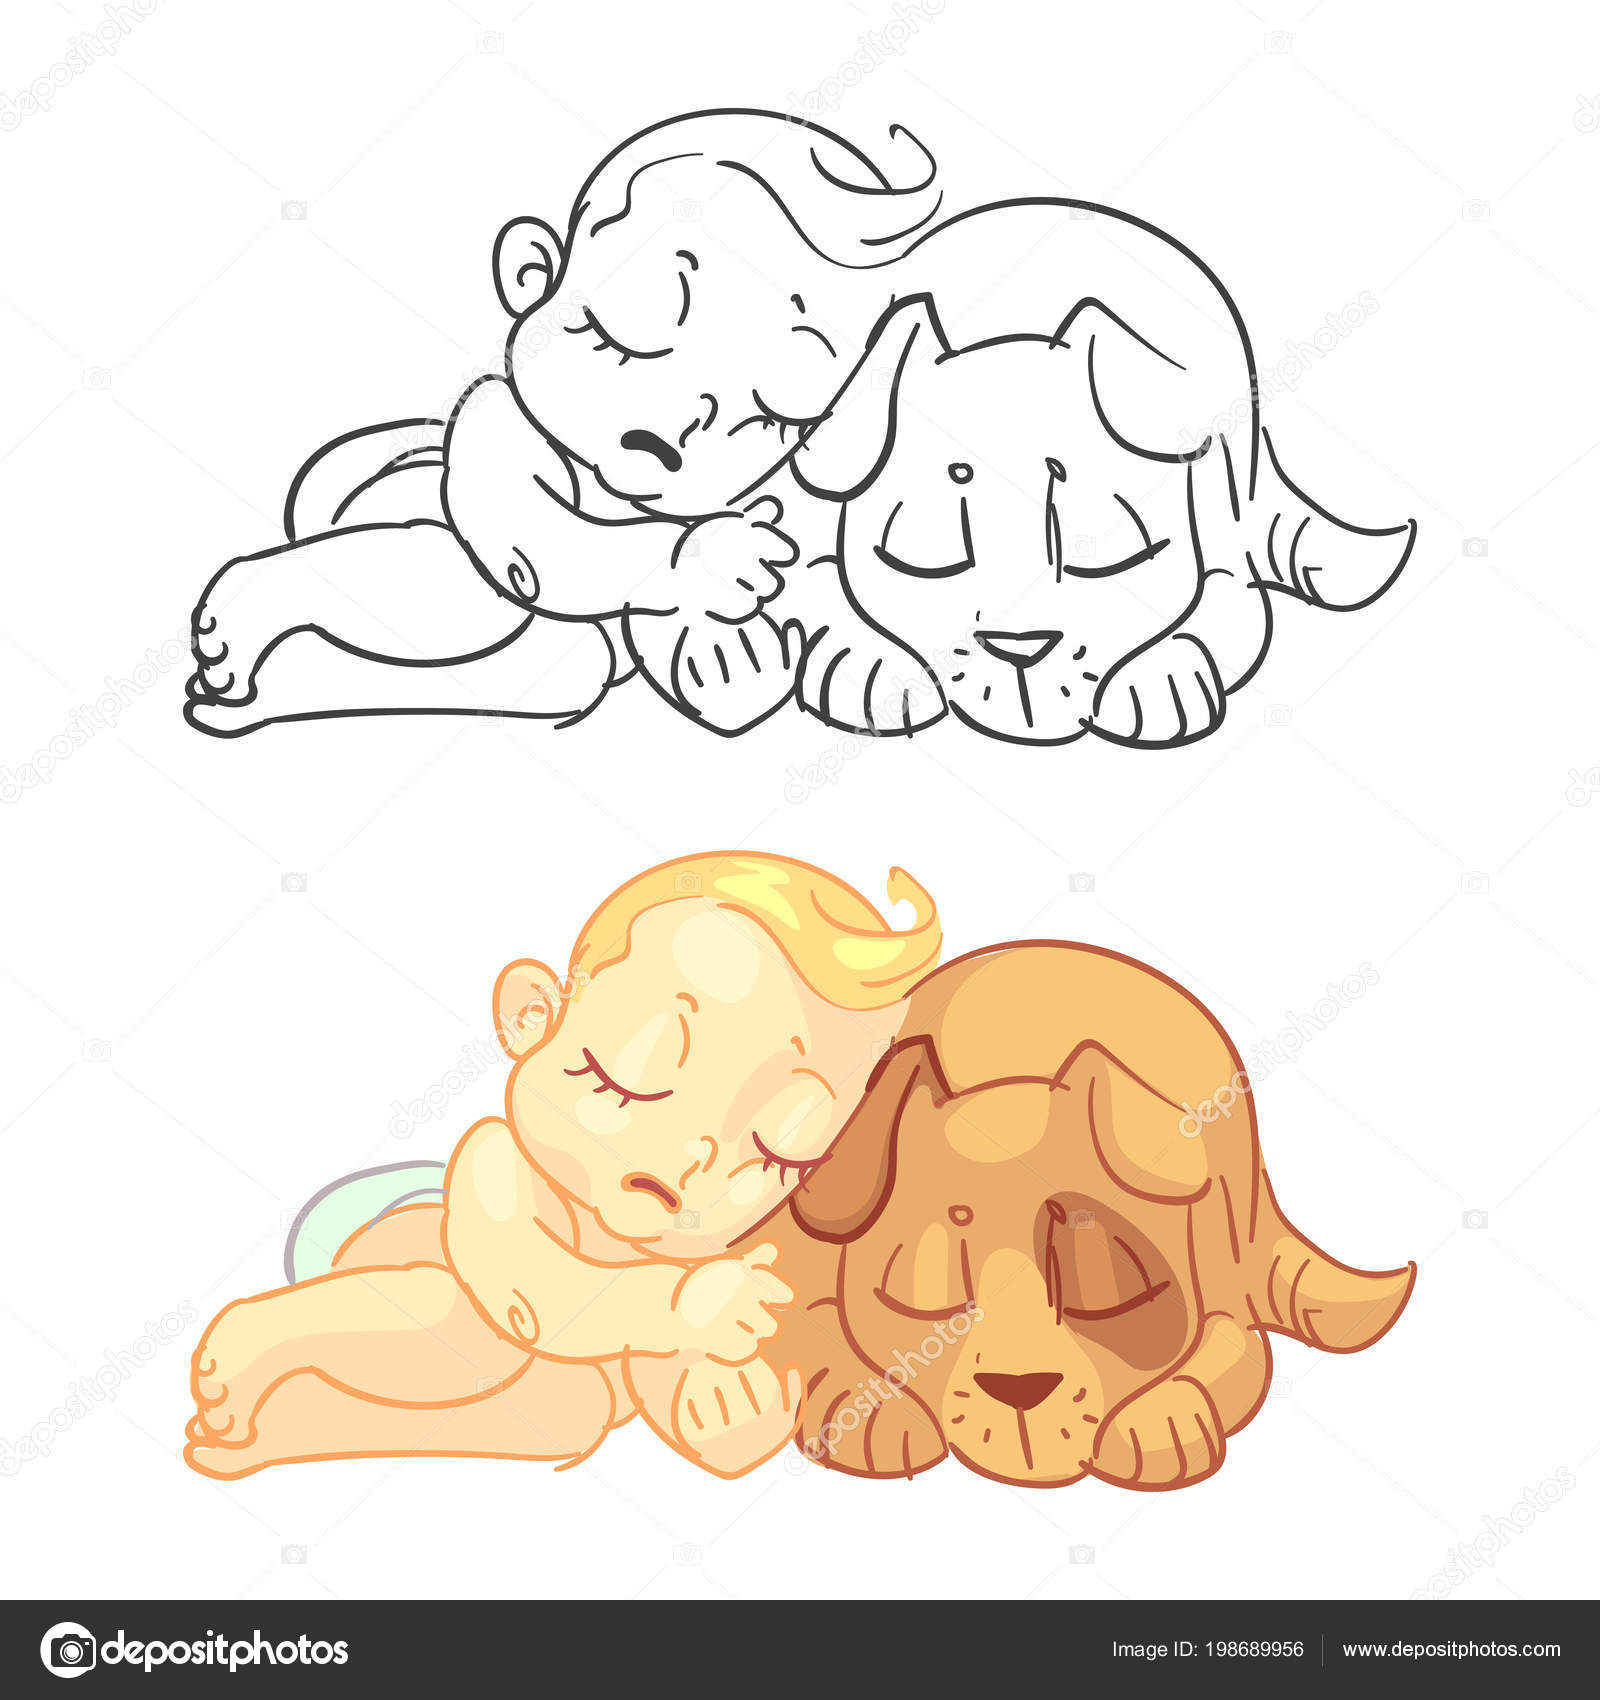 Cute Baby Dog Coloring Page Colorful Sample Vector Illustration